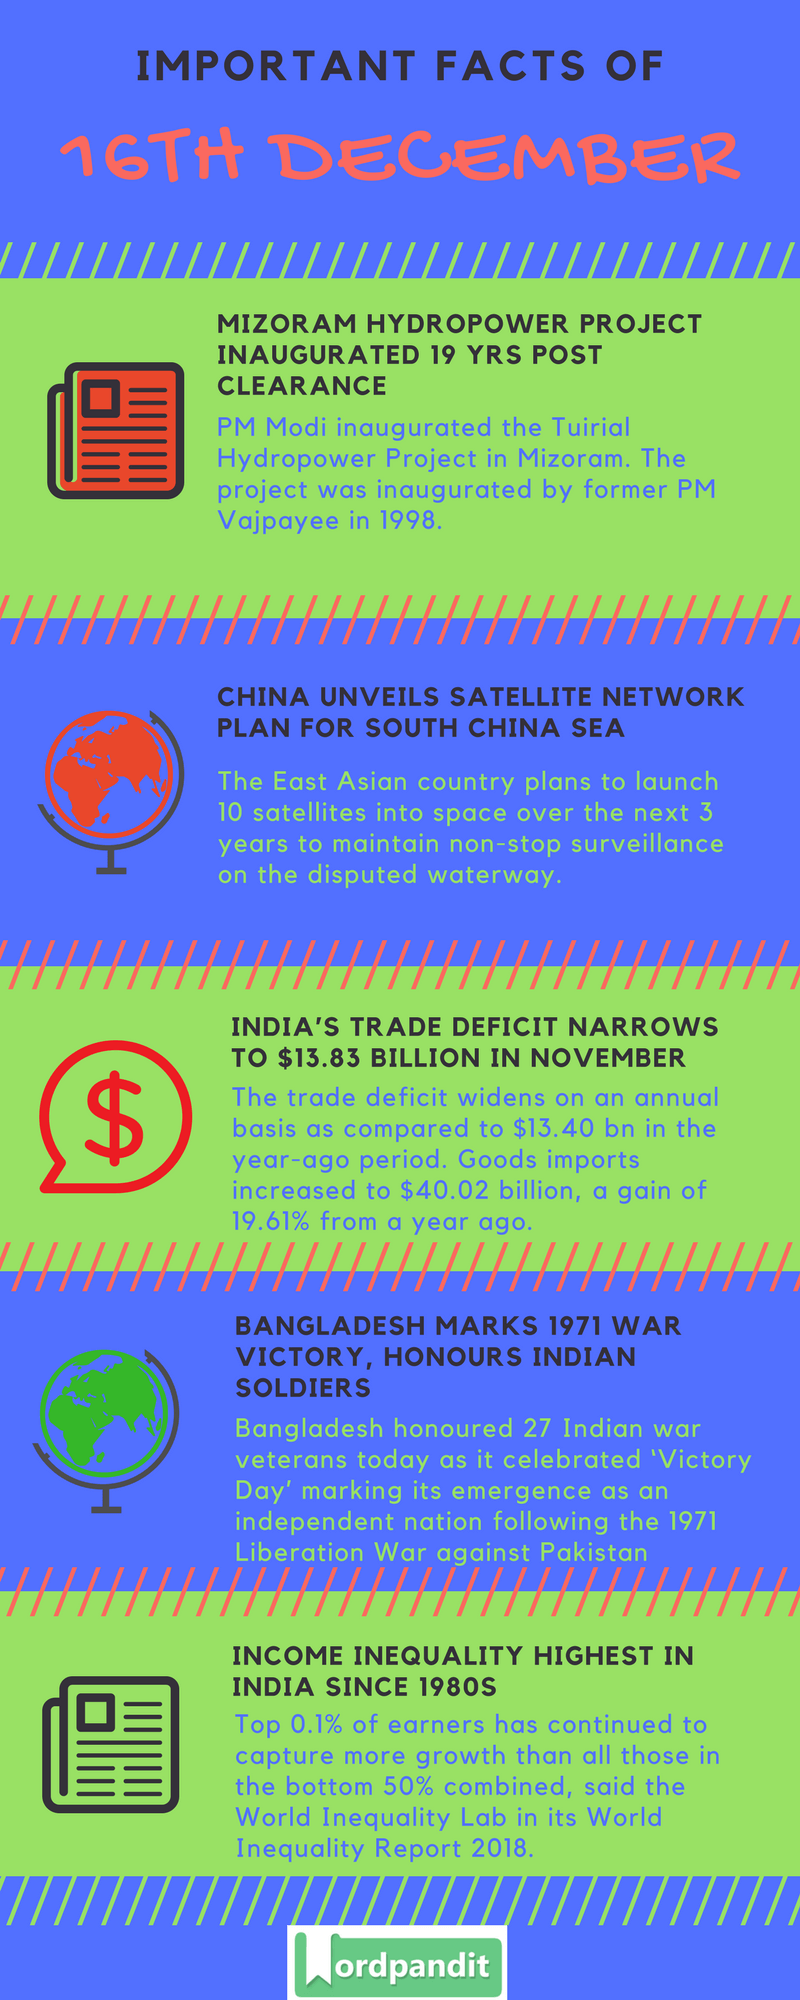 Daily-Current-Affairs-16-december-2017-Current-Affairs-Quiz-december-16-2017-Current-Affairs-Infographic